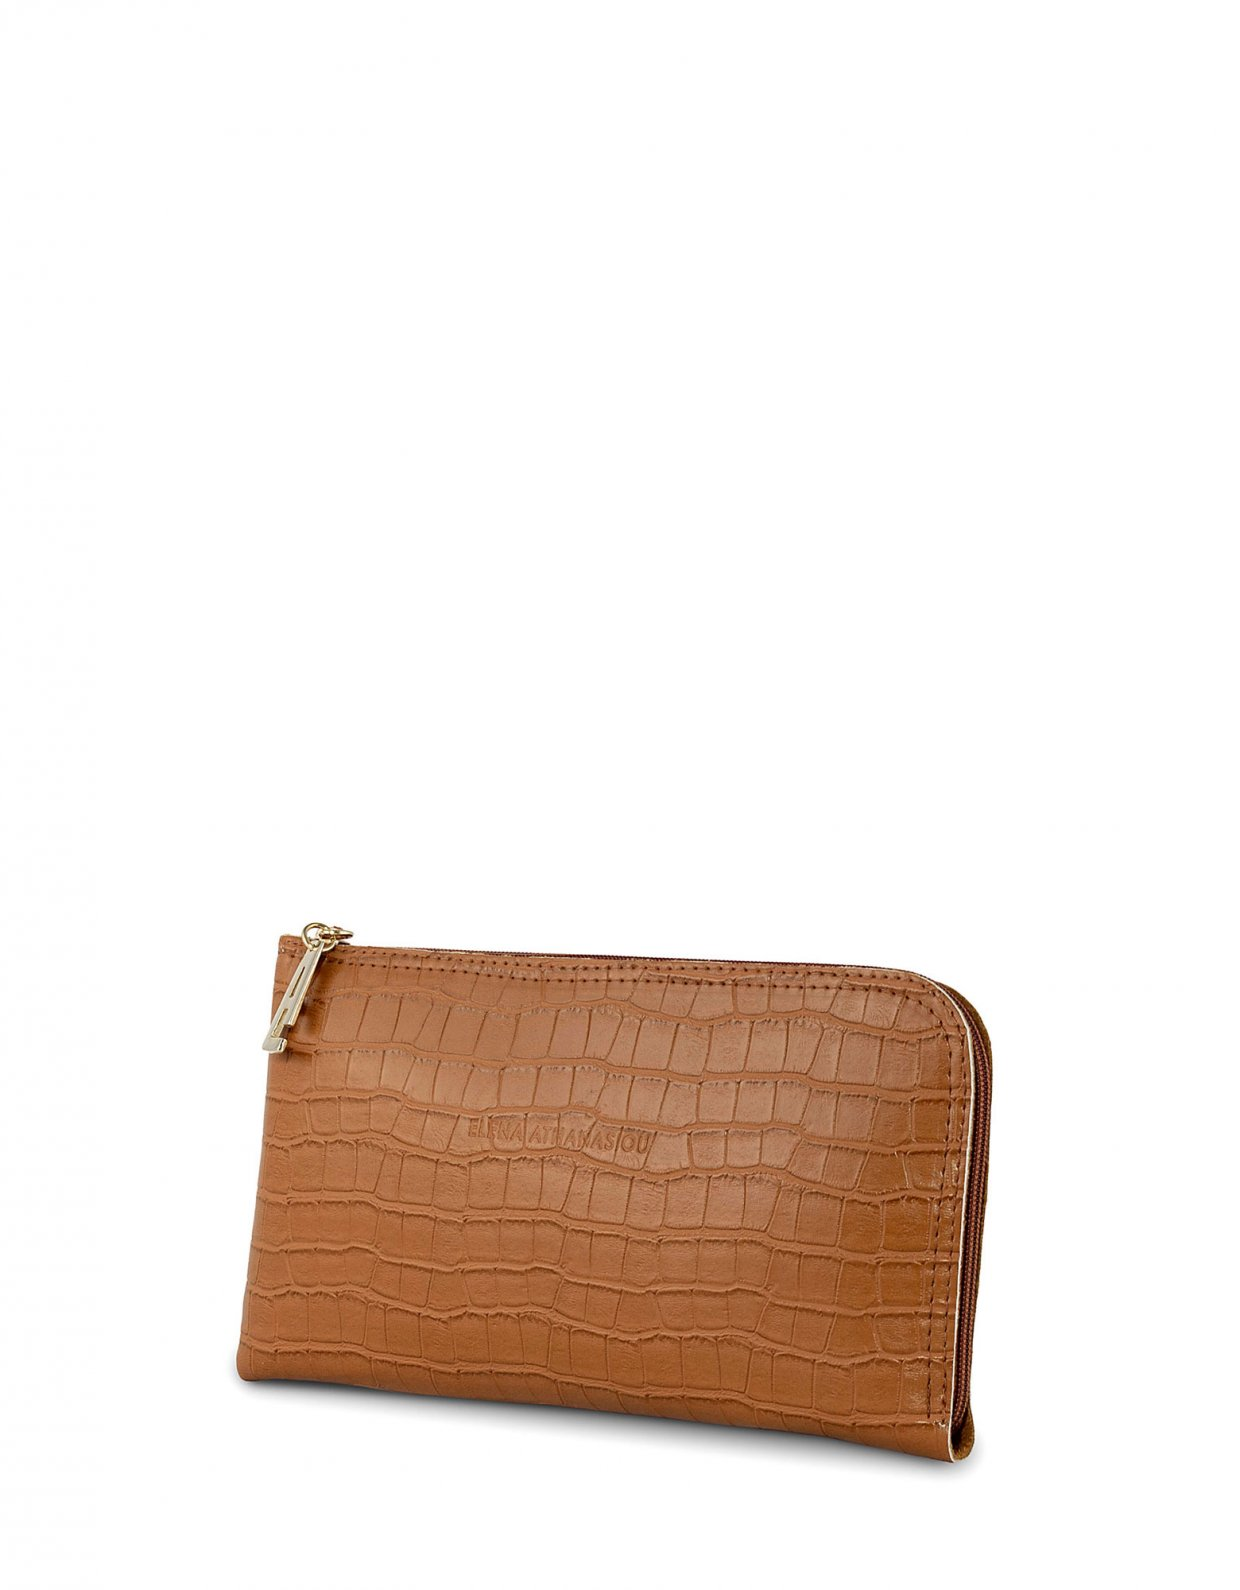 Elena Athanasiou Mini clutch bag cognac croco